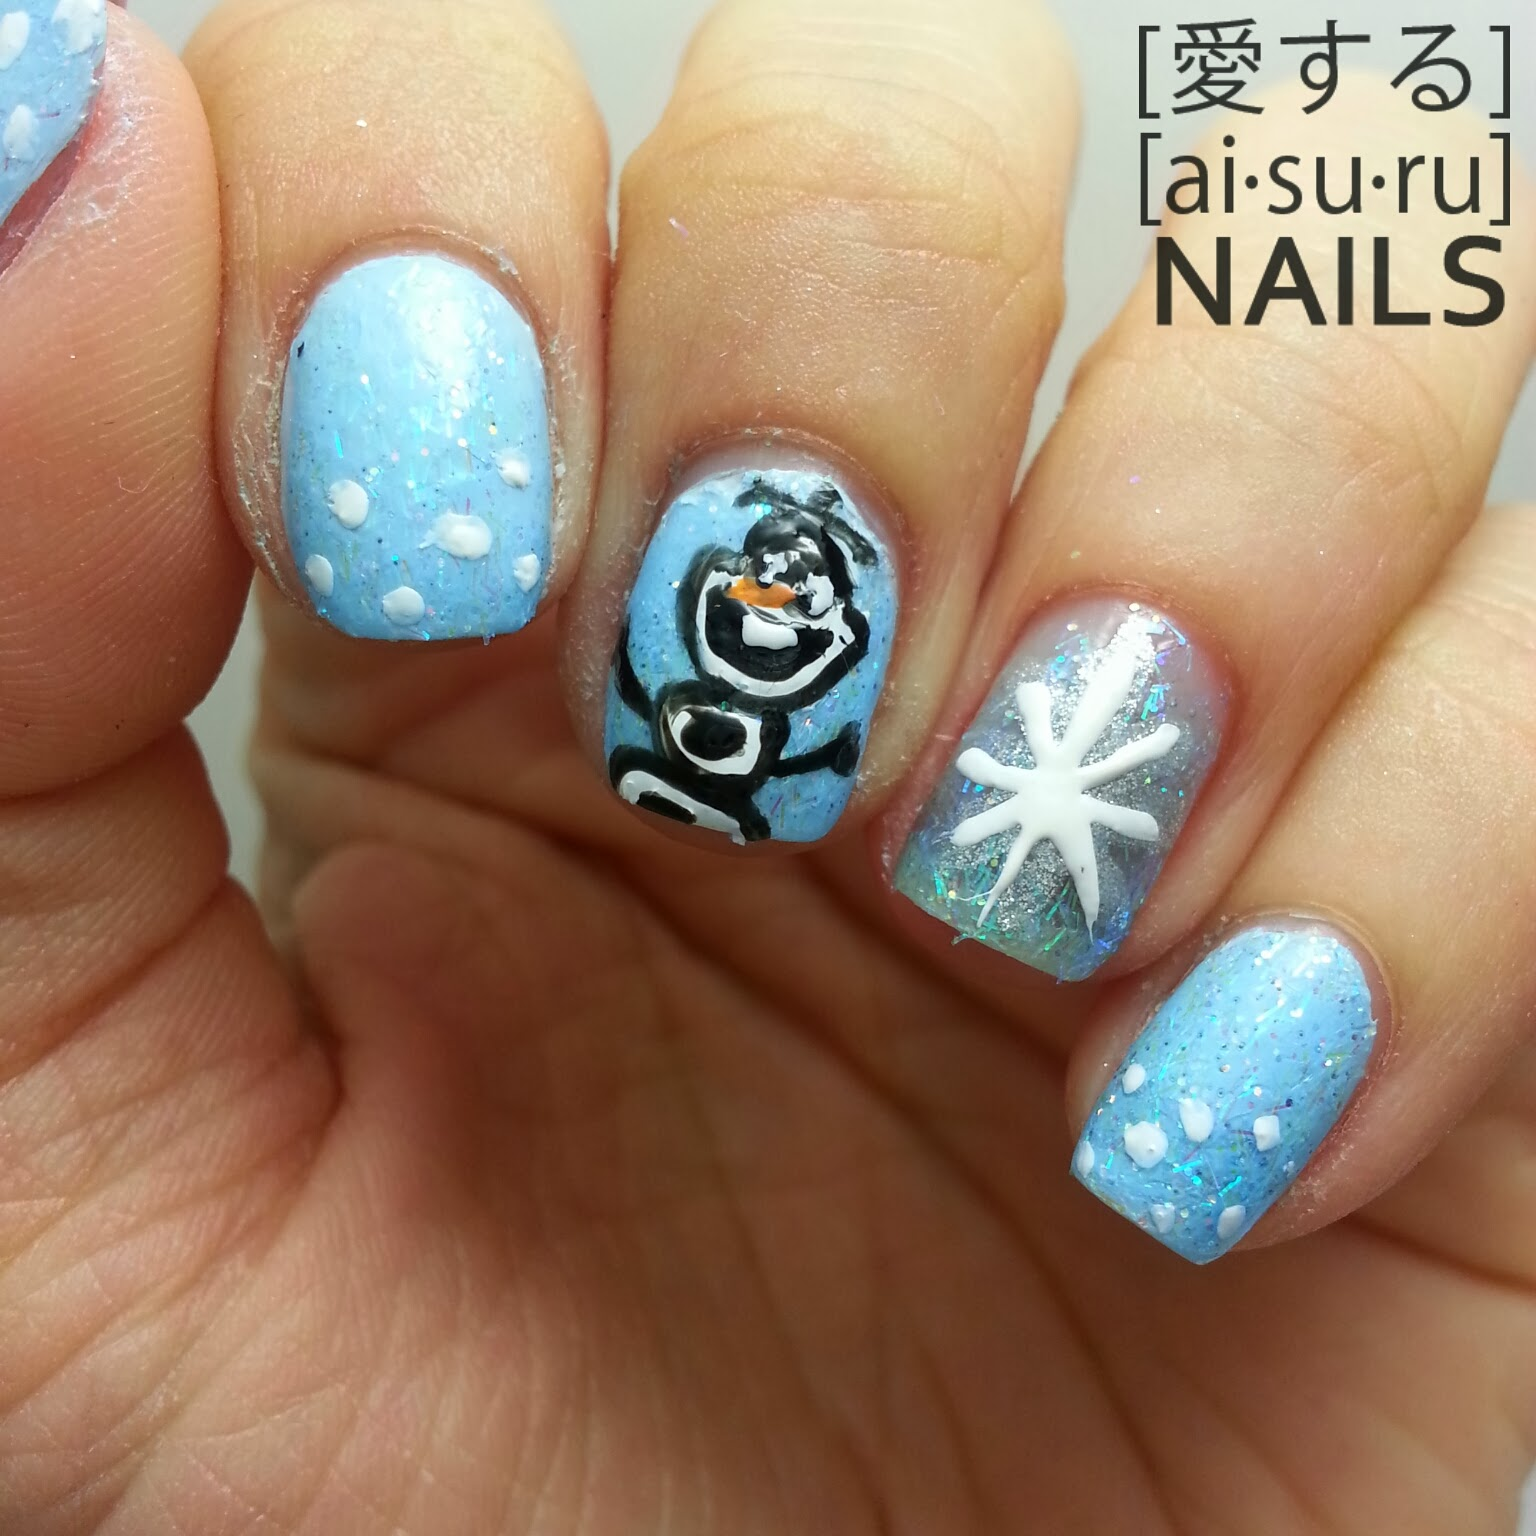 Frozen themed nail art aisuru nails olaf frozen themed nails prinsesfo Gallery